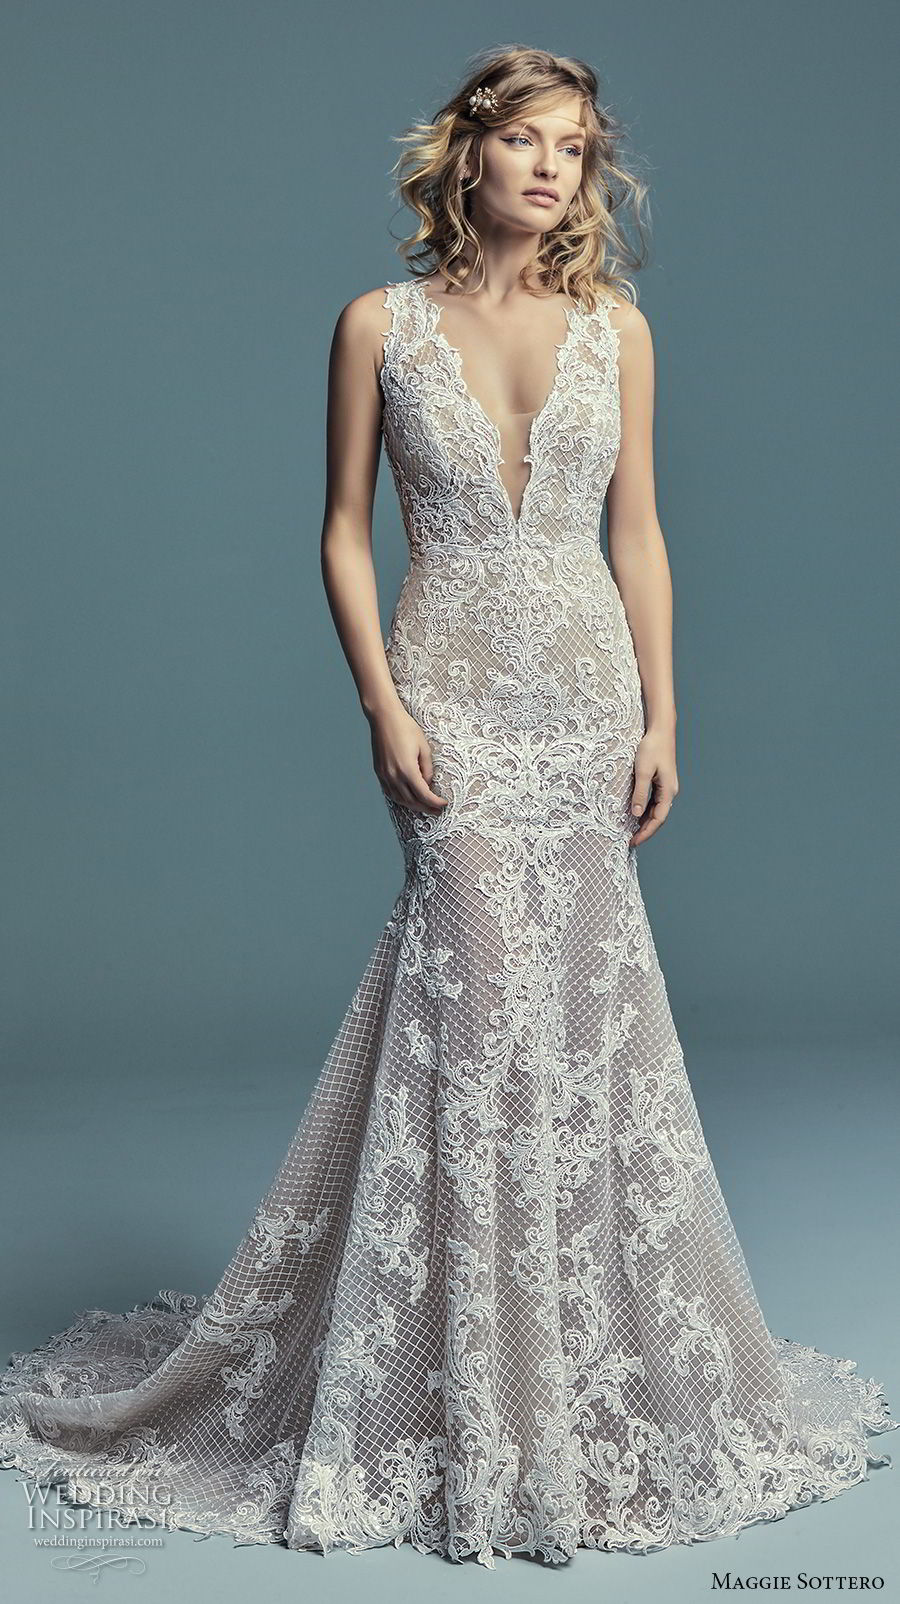 Maggie Sottero Fall 2018 Wedding Dresses Lucienne